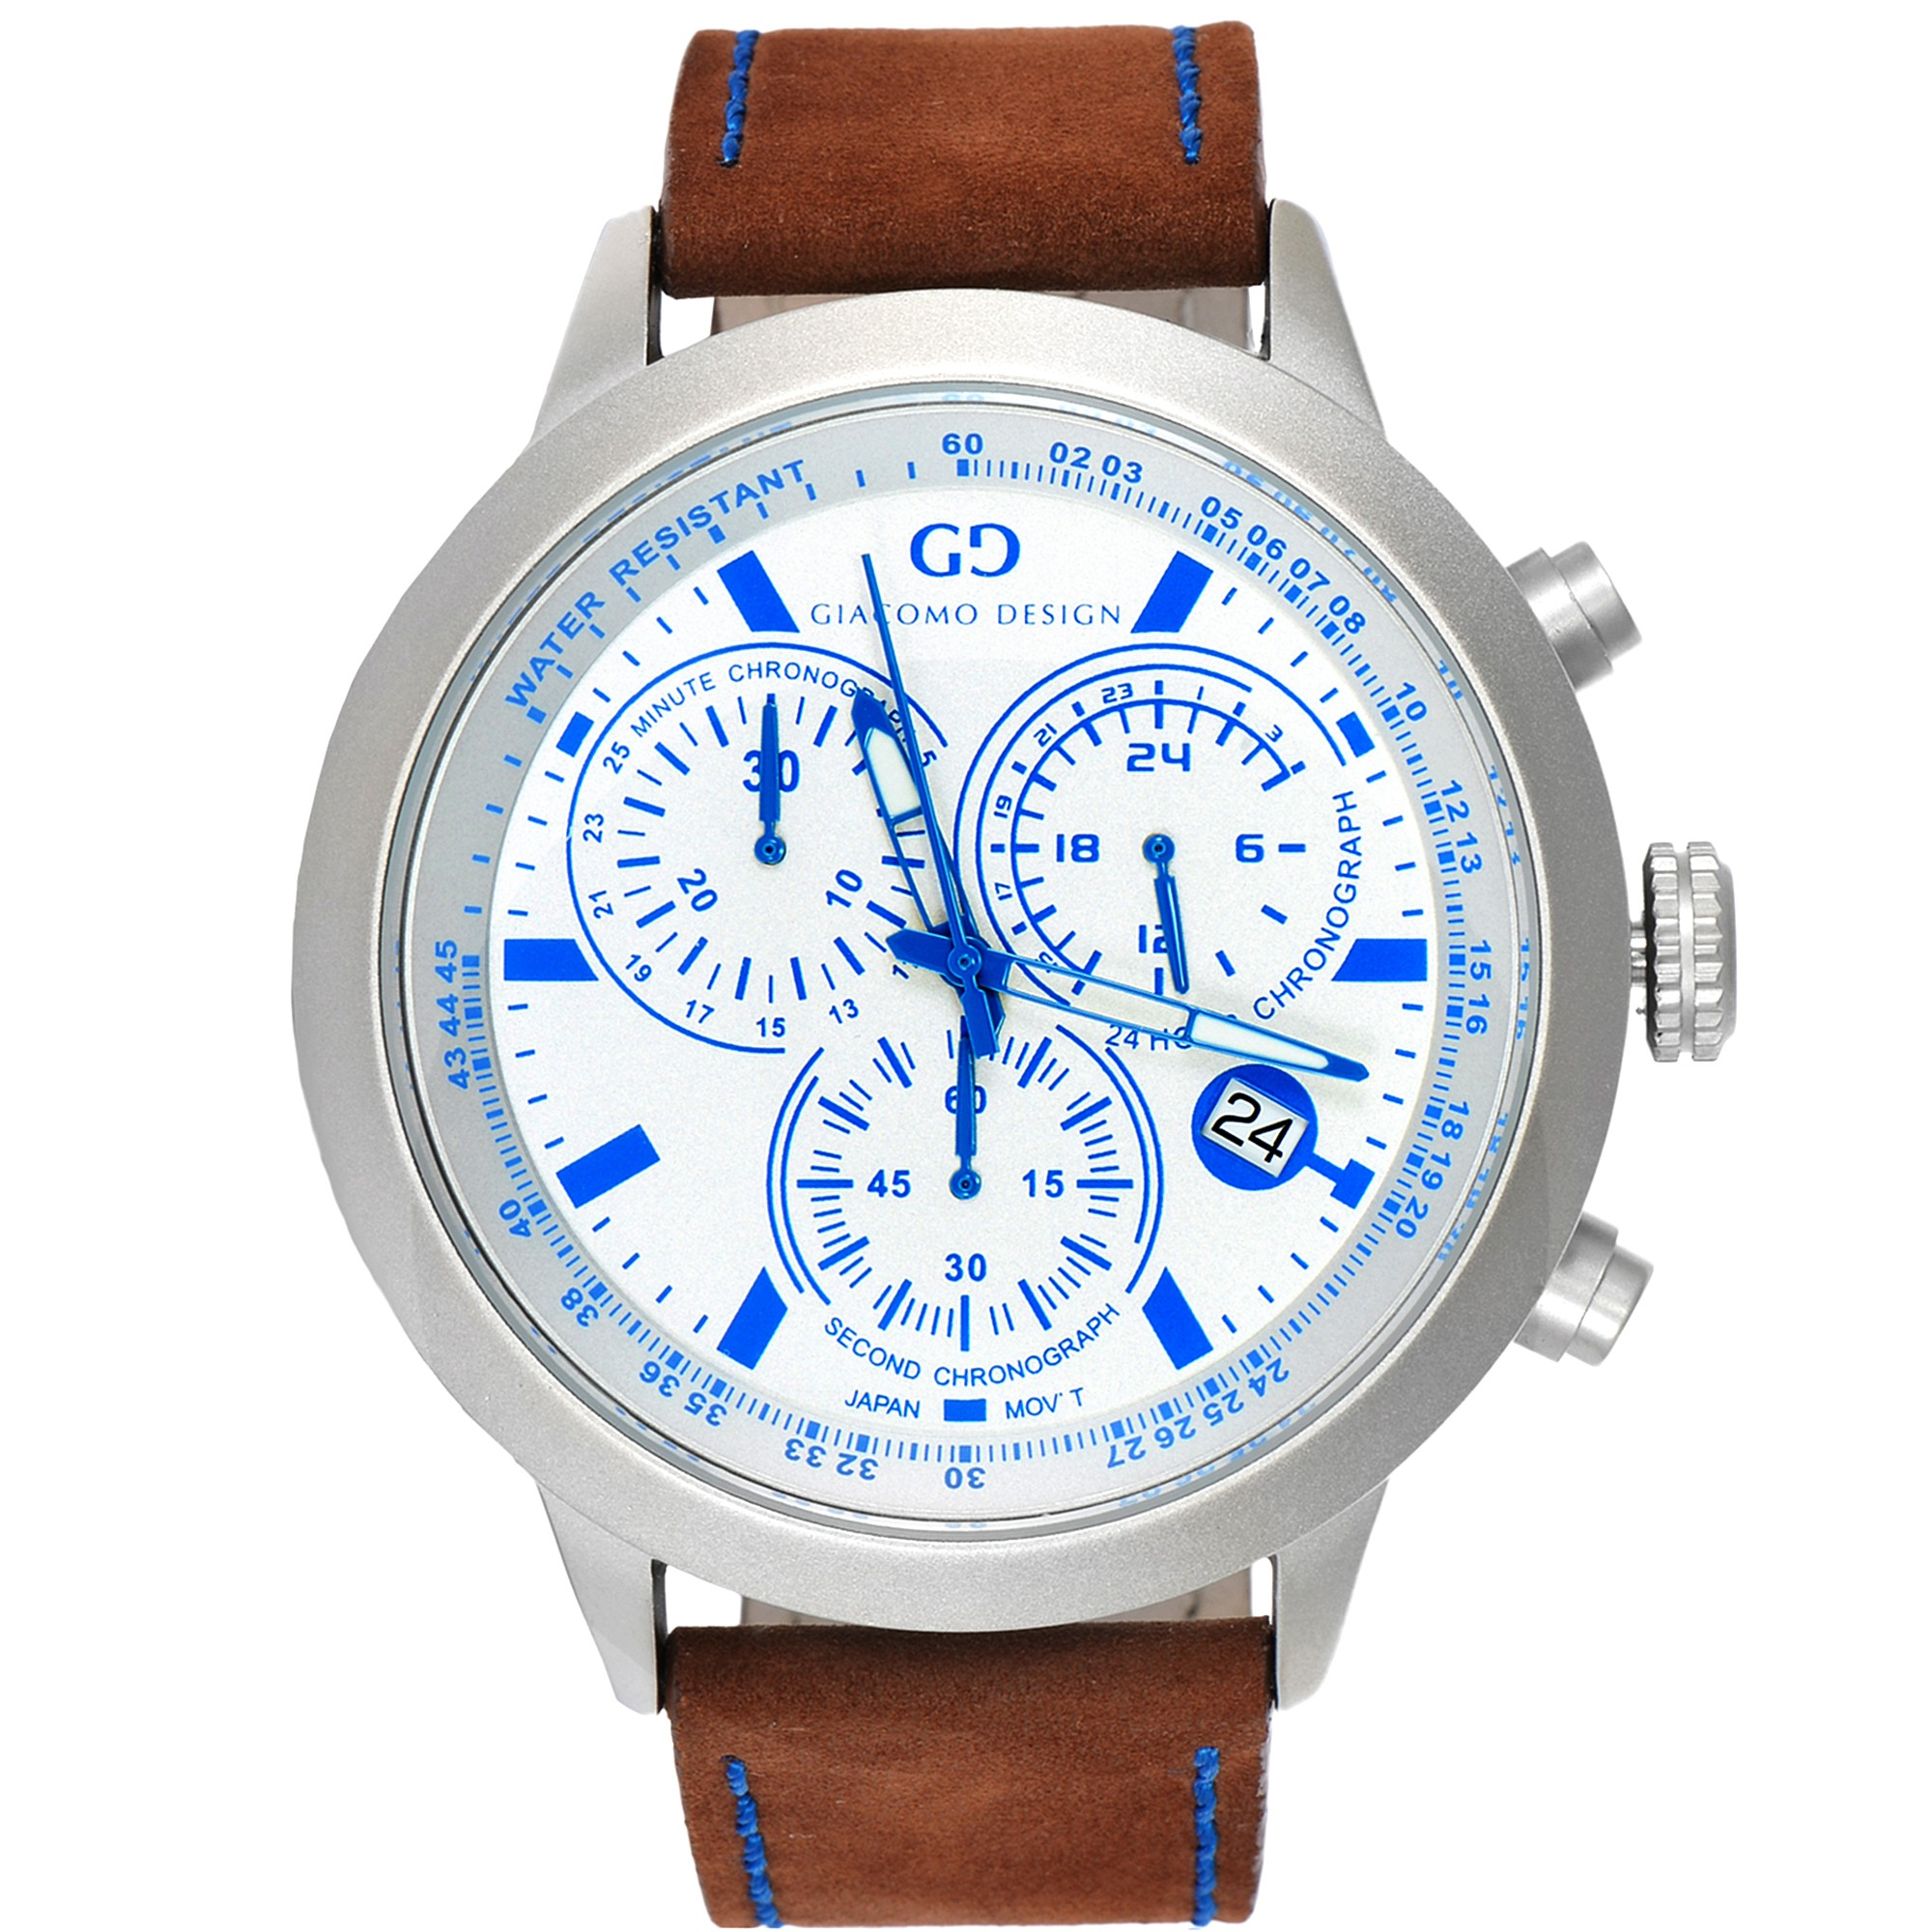 watches design composito momo zm watch men model s